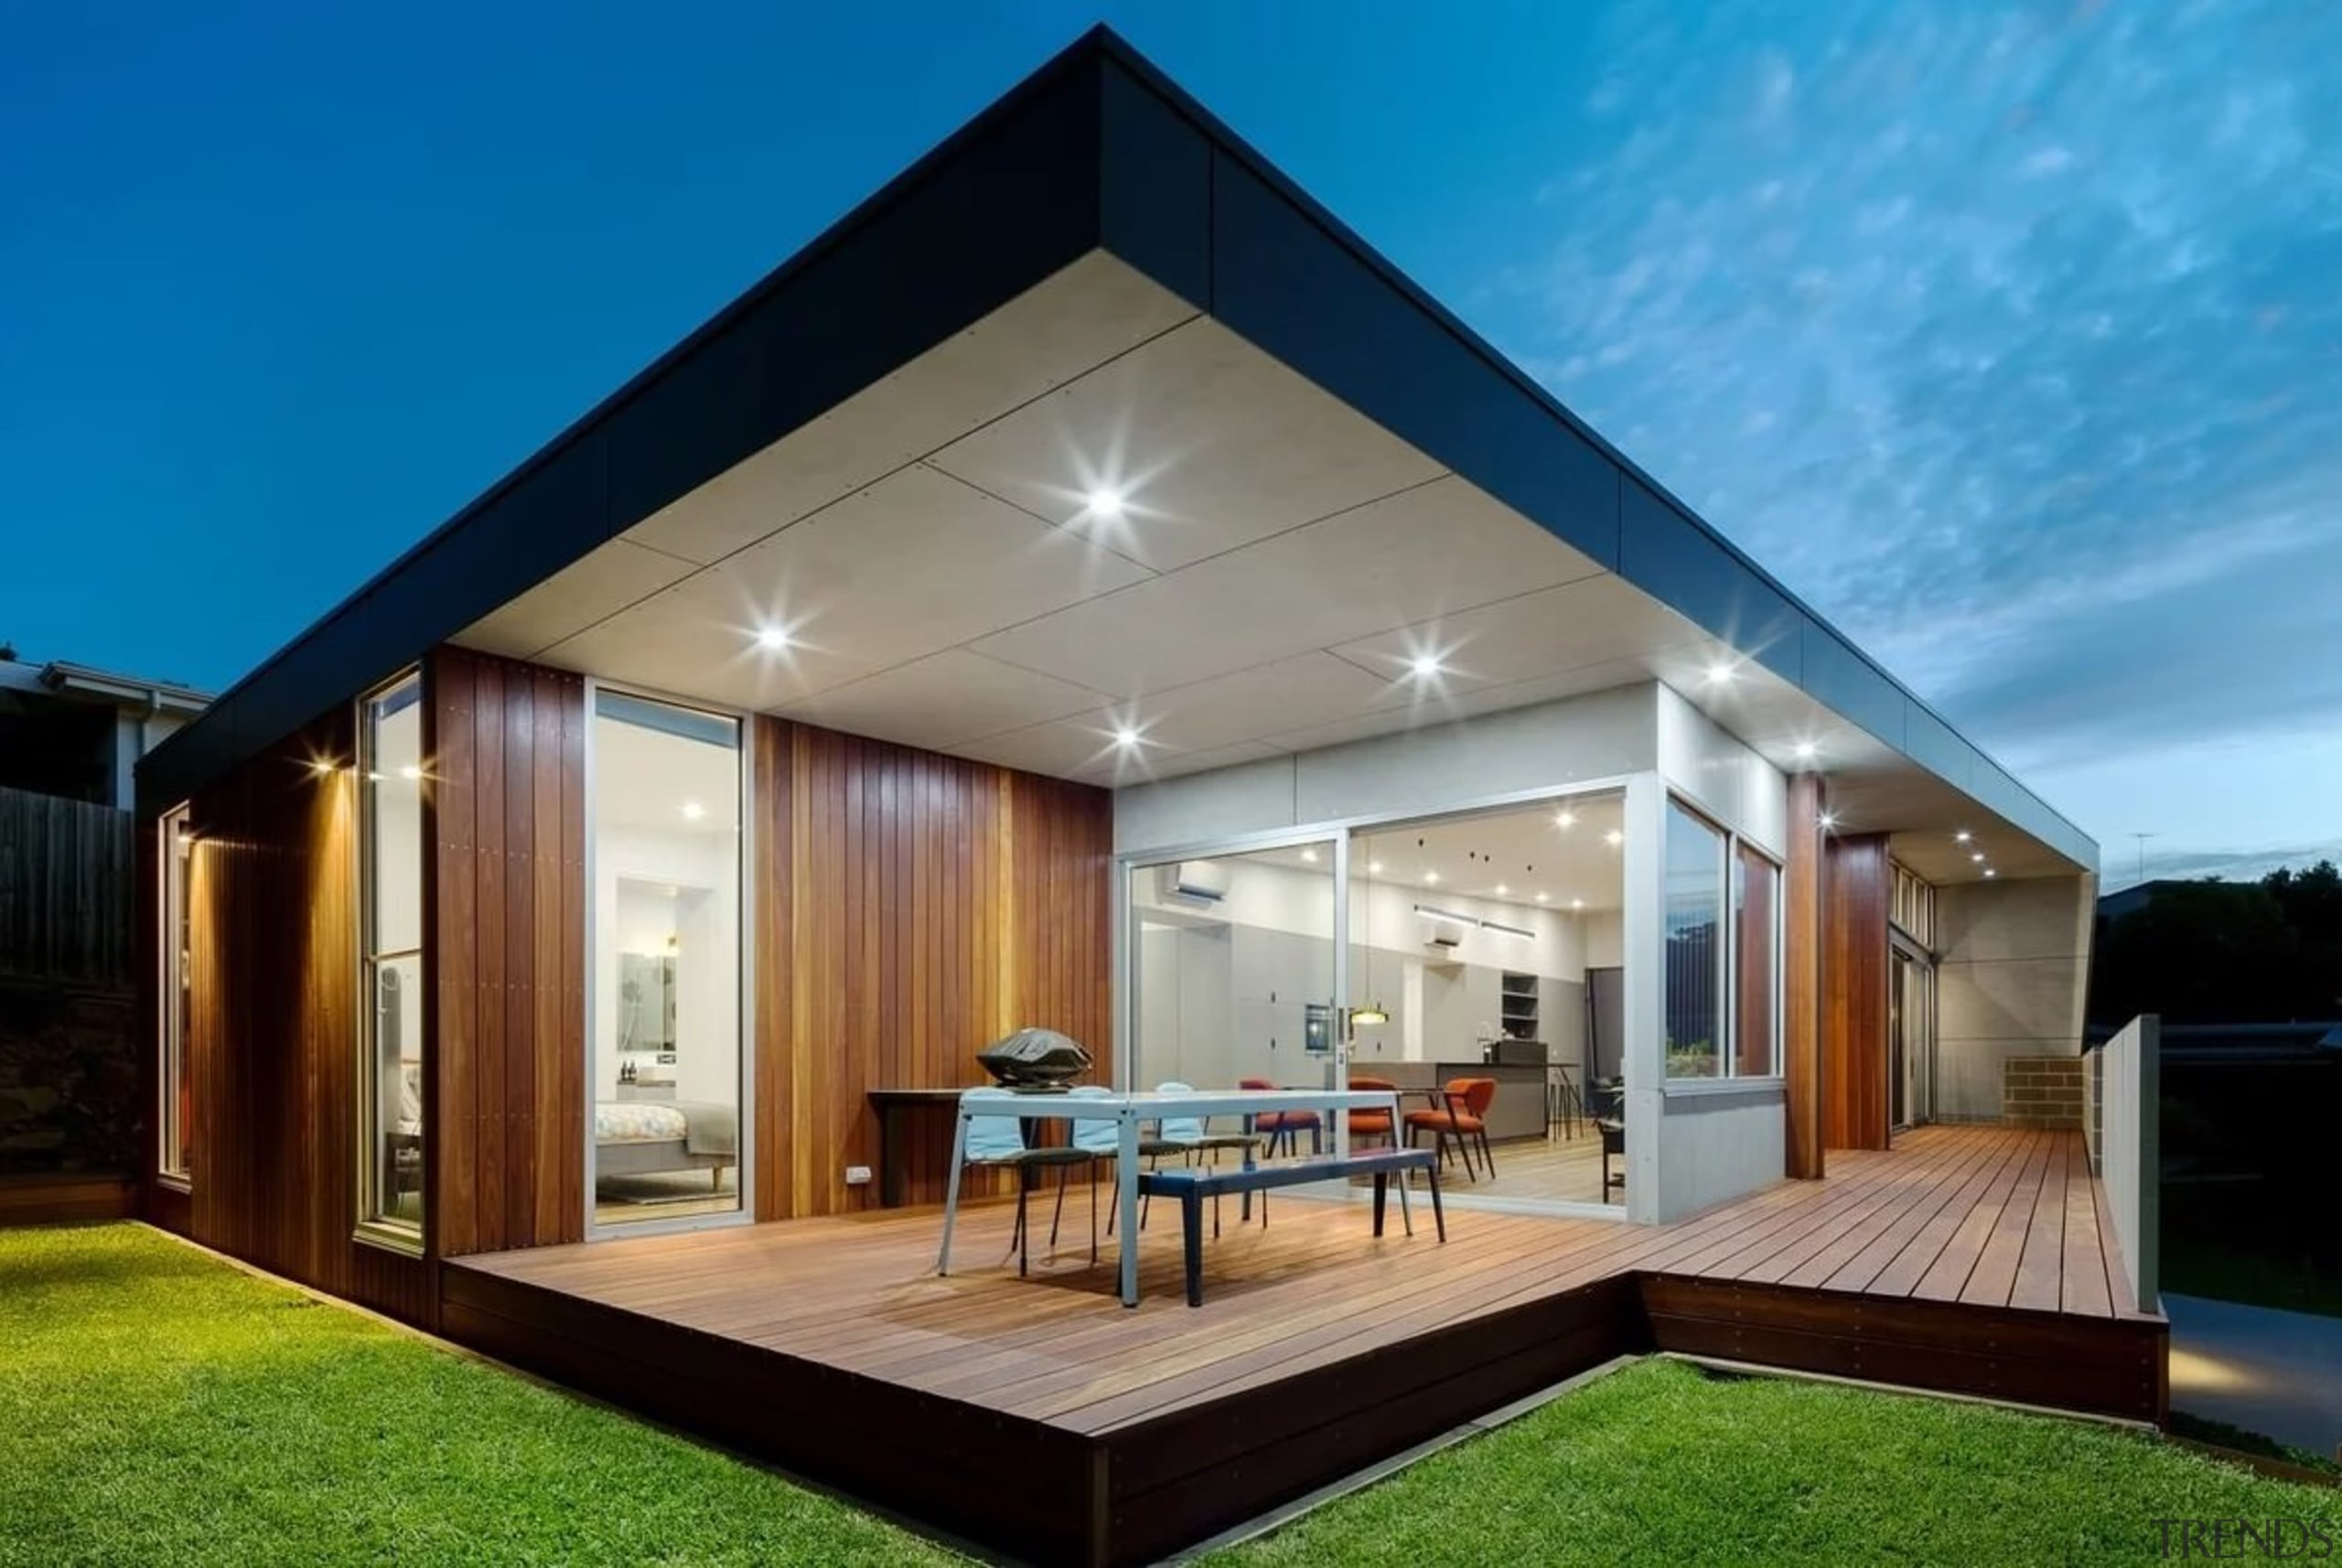 See the home here architecture, backyard, daylighting, estate, facade, home, house, interior design, property, real estate, residential area, roof, window